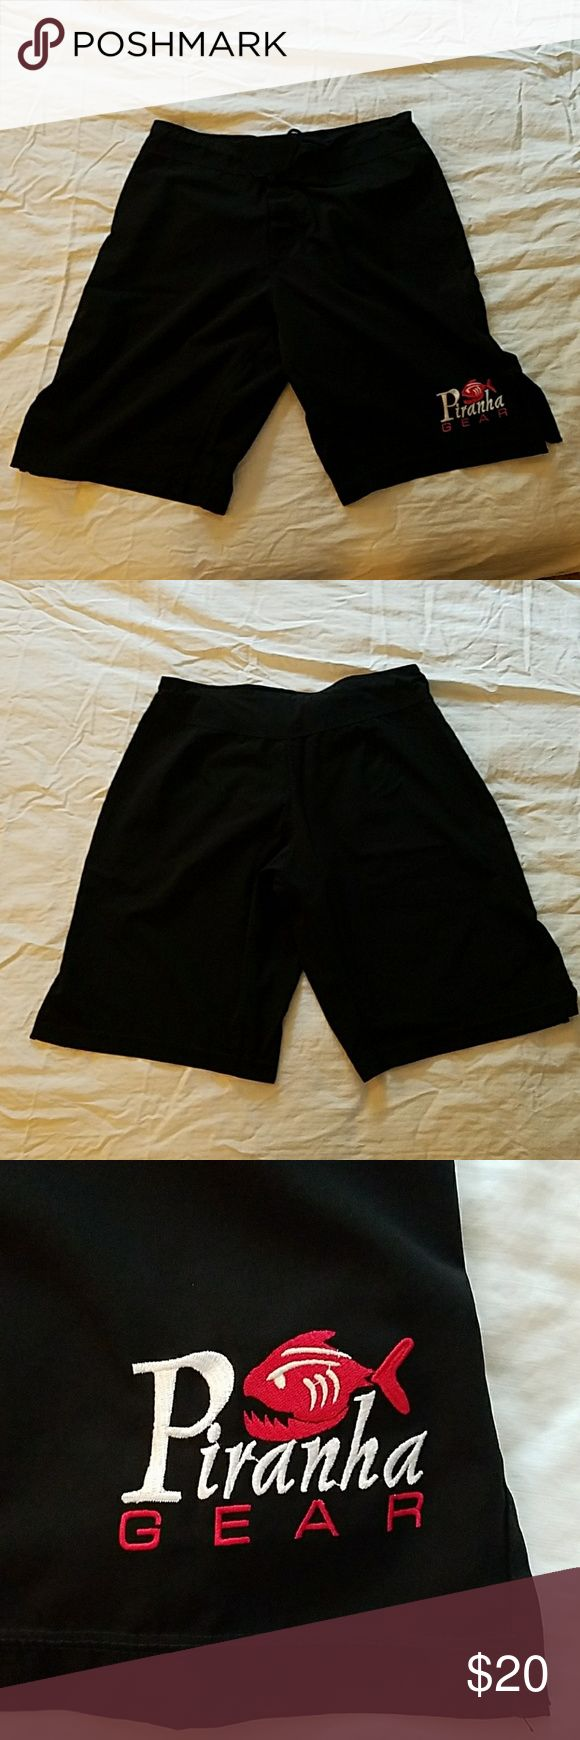 Mens Piranha Gear MMA Shorts Mens Piranha Gear MMA shorts, size large (fits between 33-36 waist). Worn once, in excellent condition. Make an offer. No PayPal, no trades please. Thanks for looking! Piranha Gear MMA Shorts Athletic